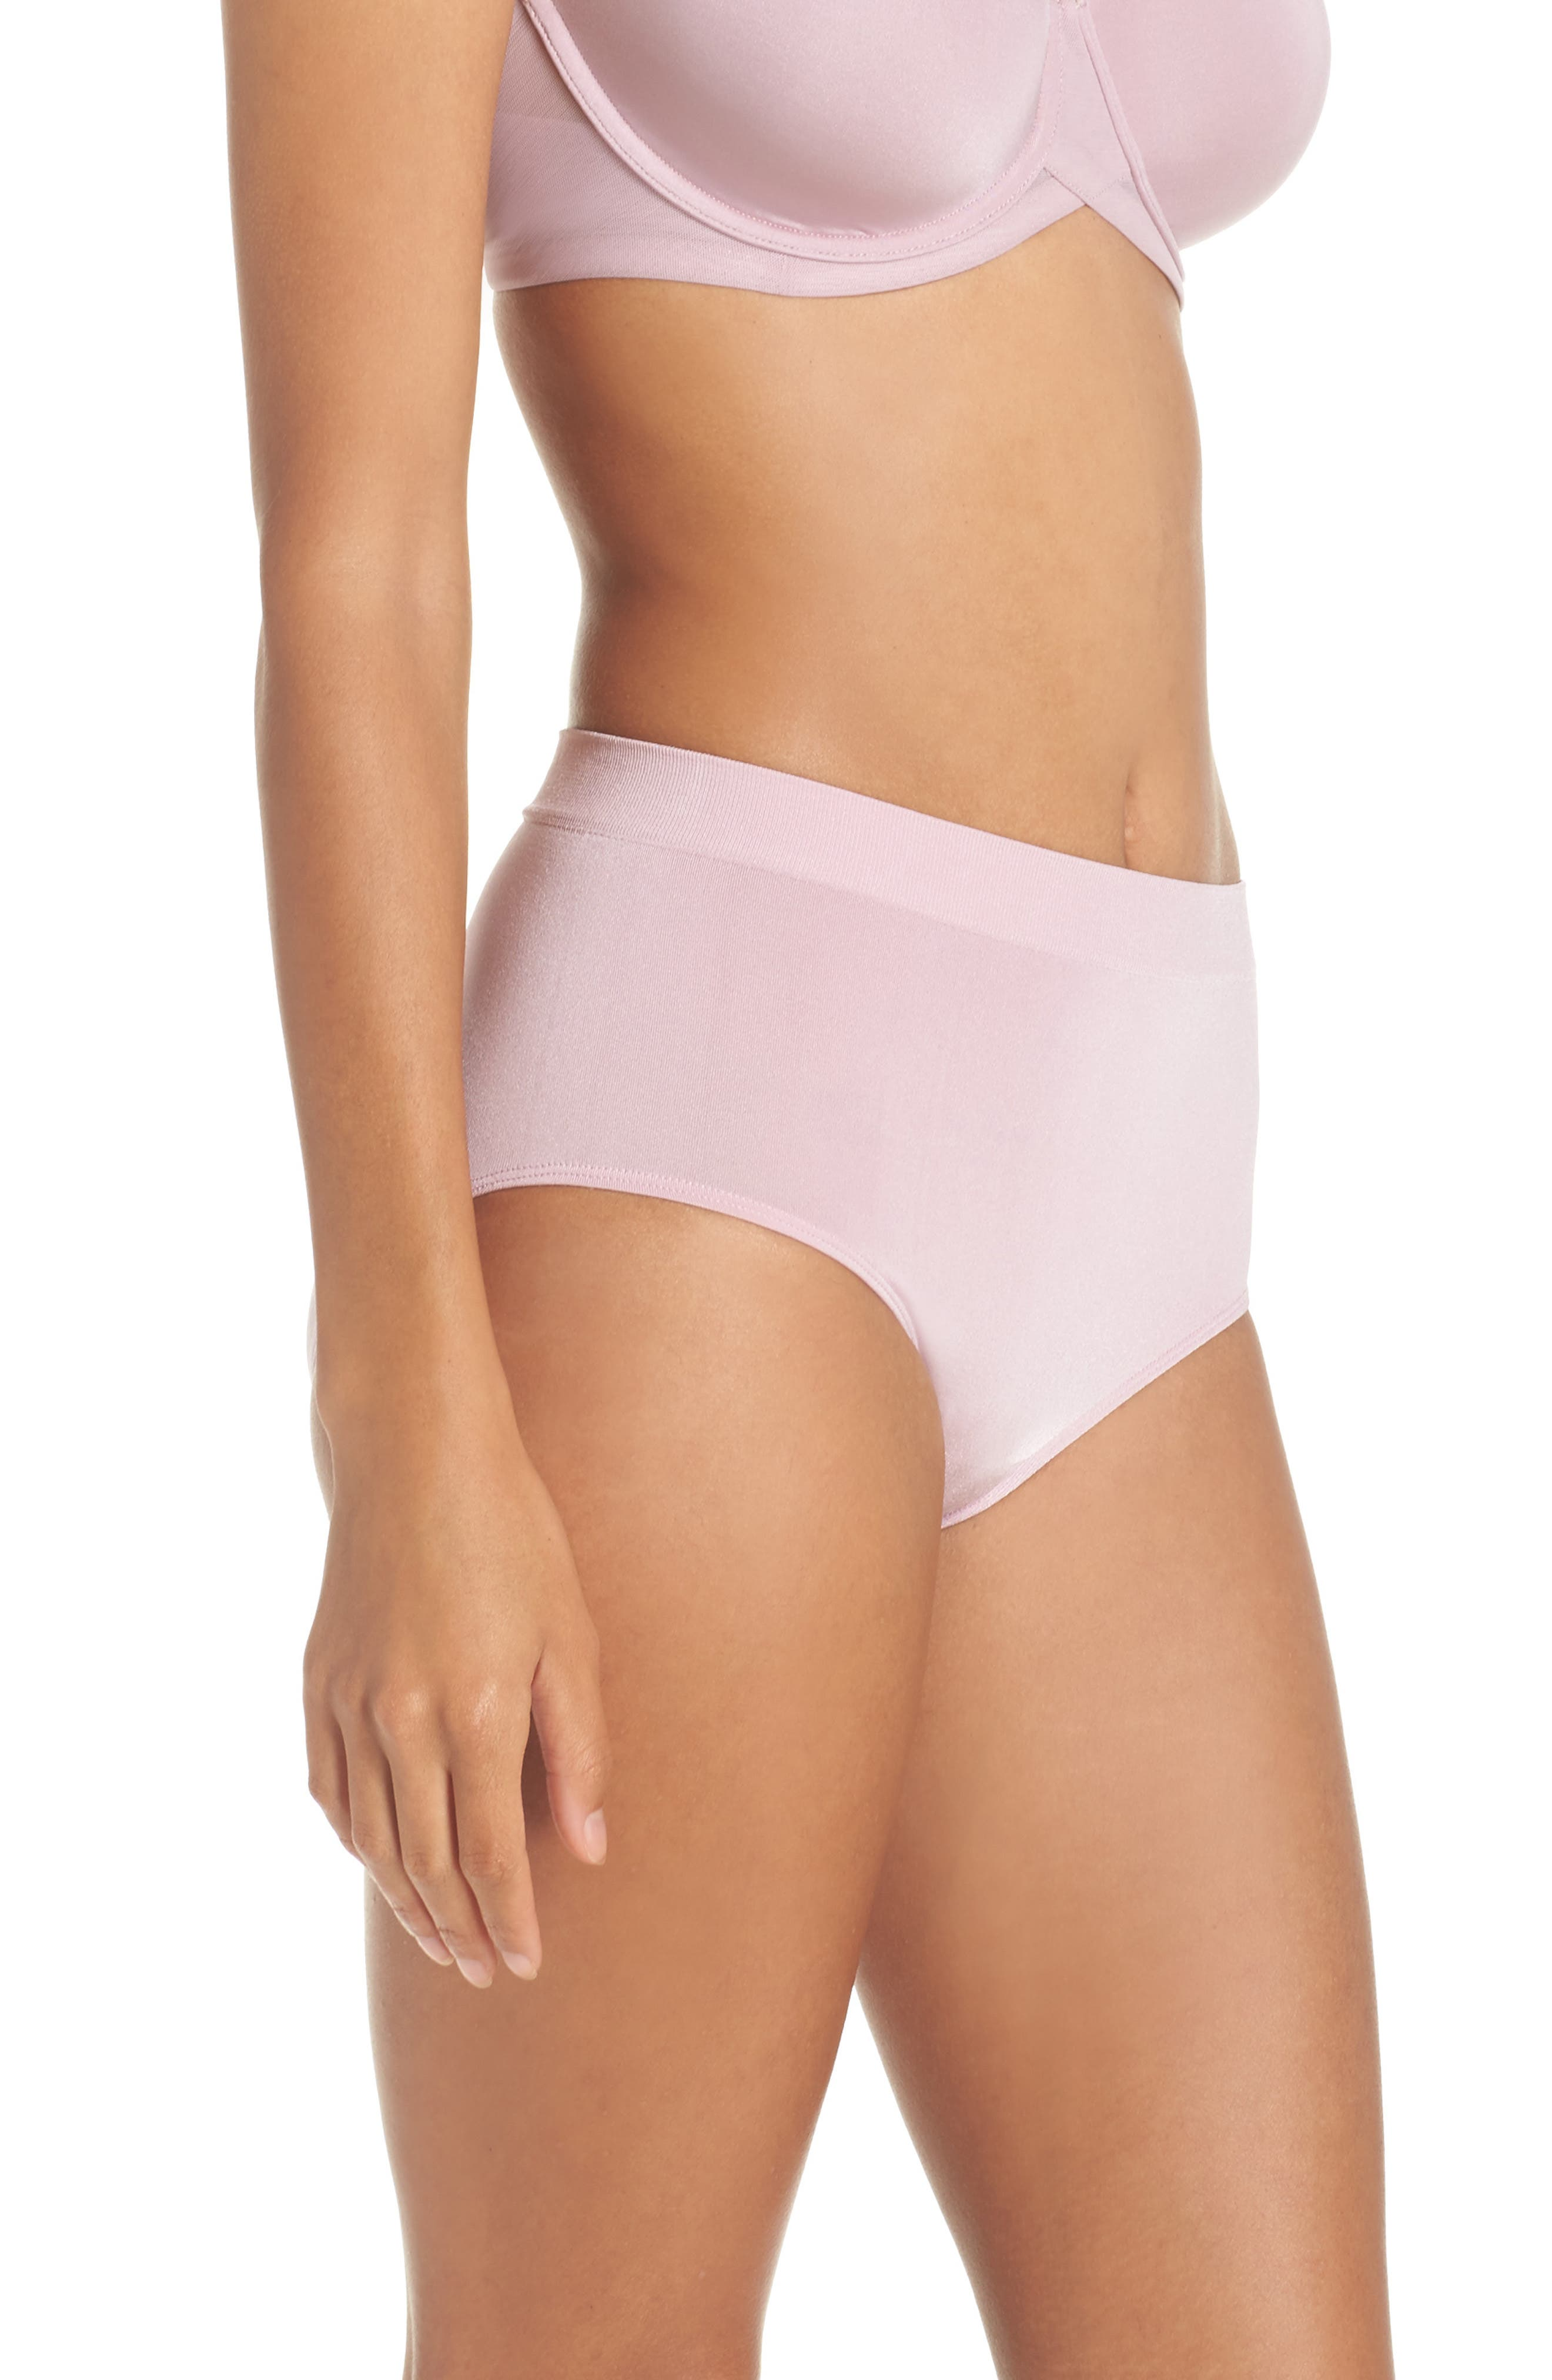 B Smooth Briefs,                             Alternate thumbnail 147, color,